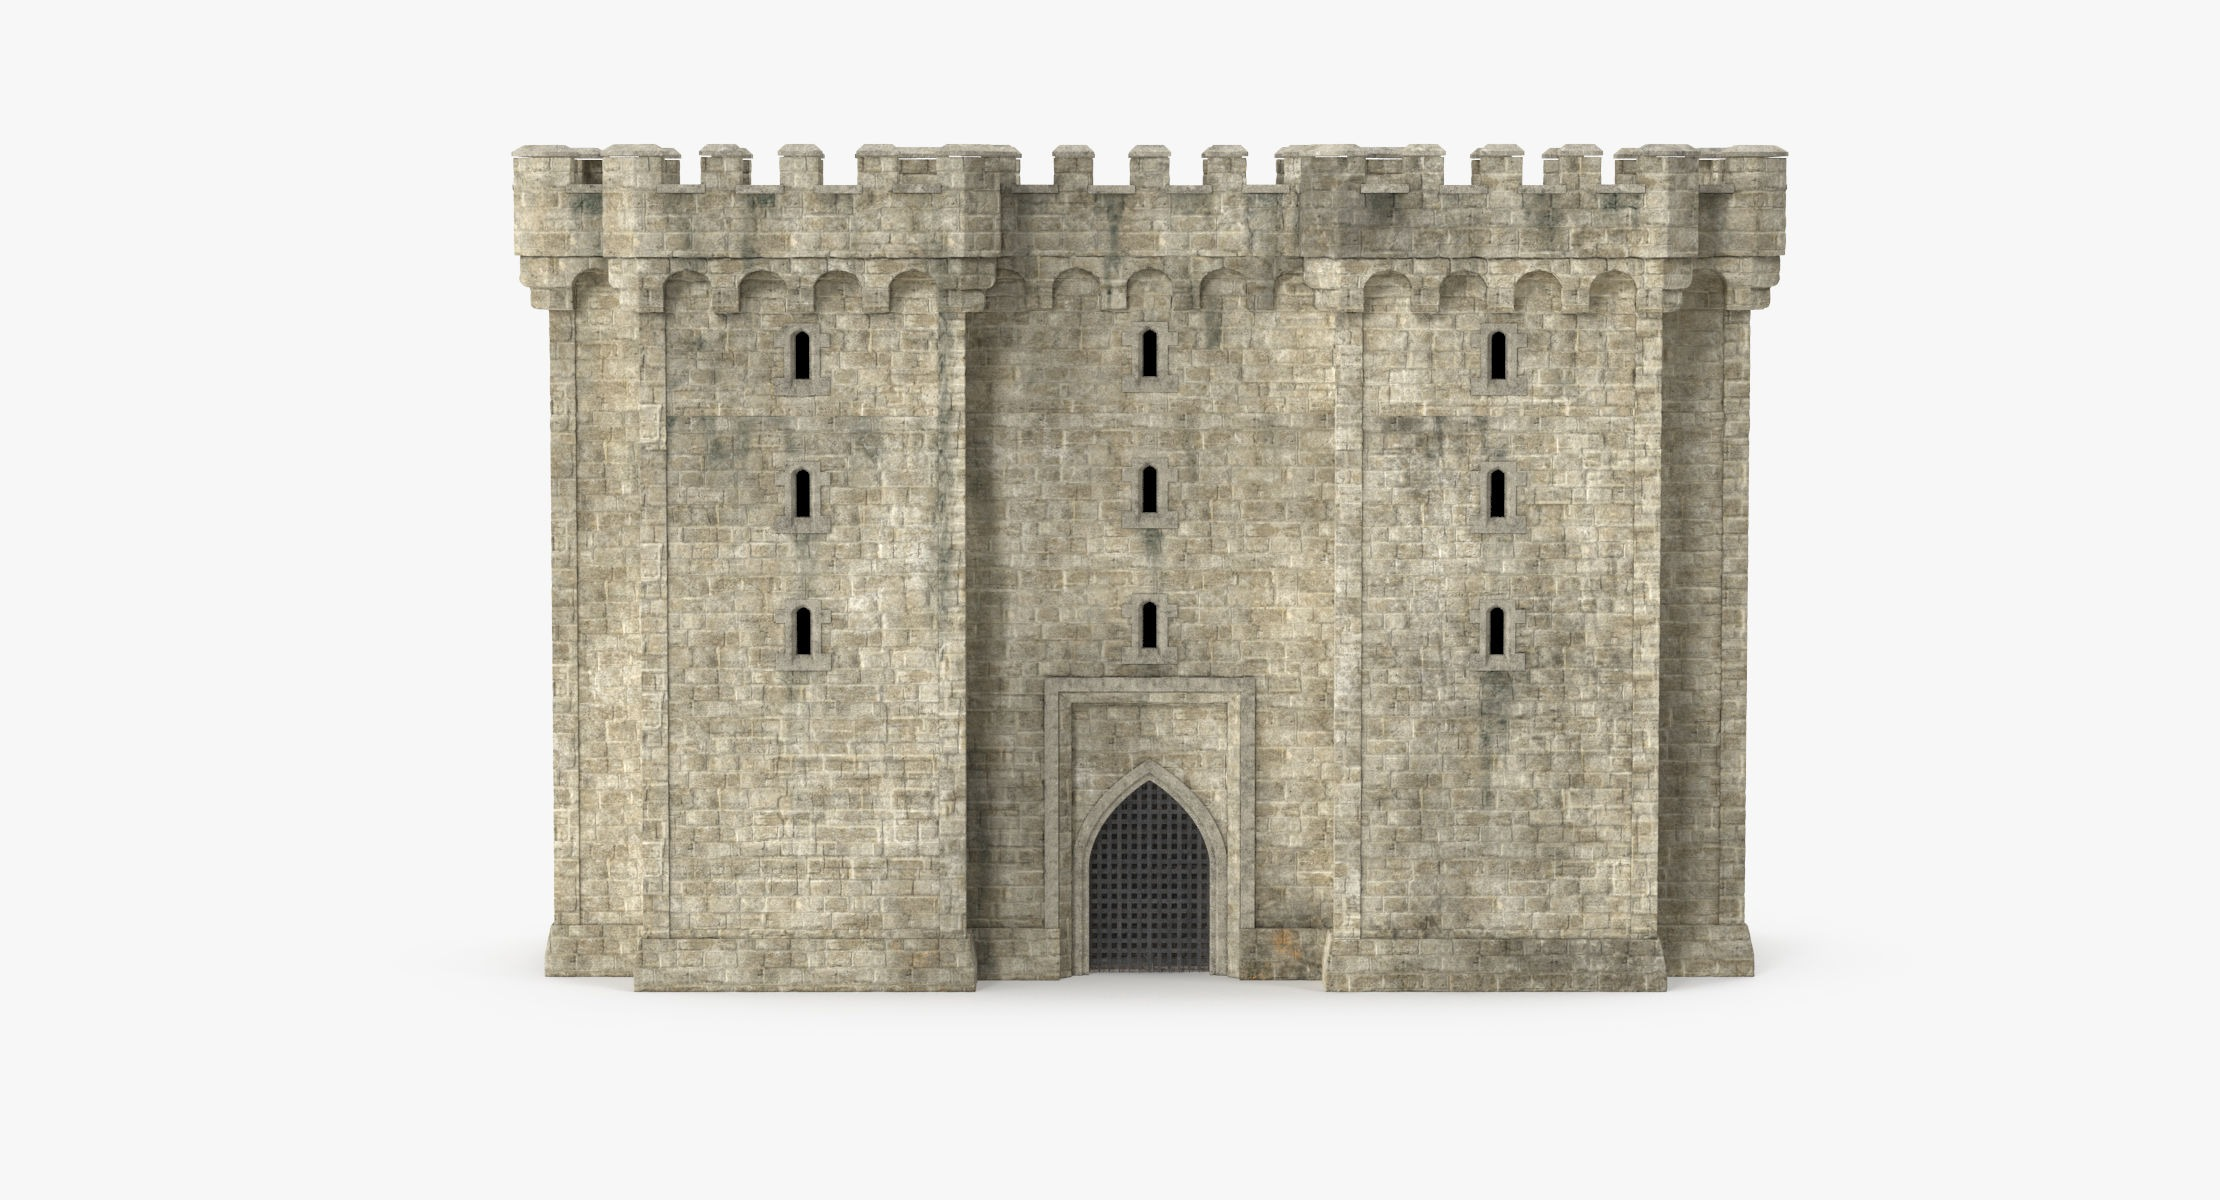 Gatehouse with portcullis 01 - Castle - reel 1